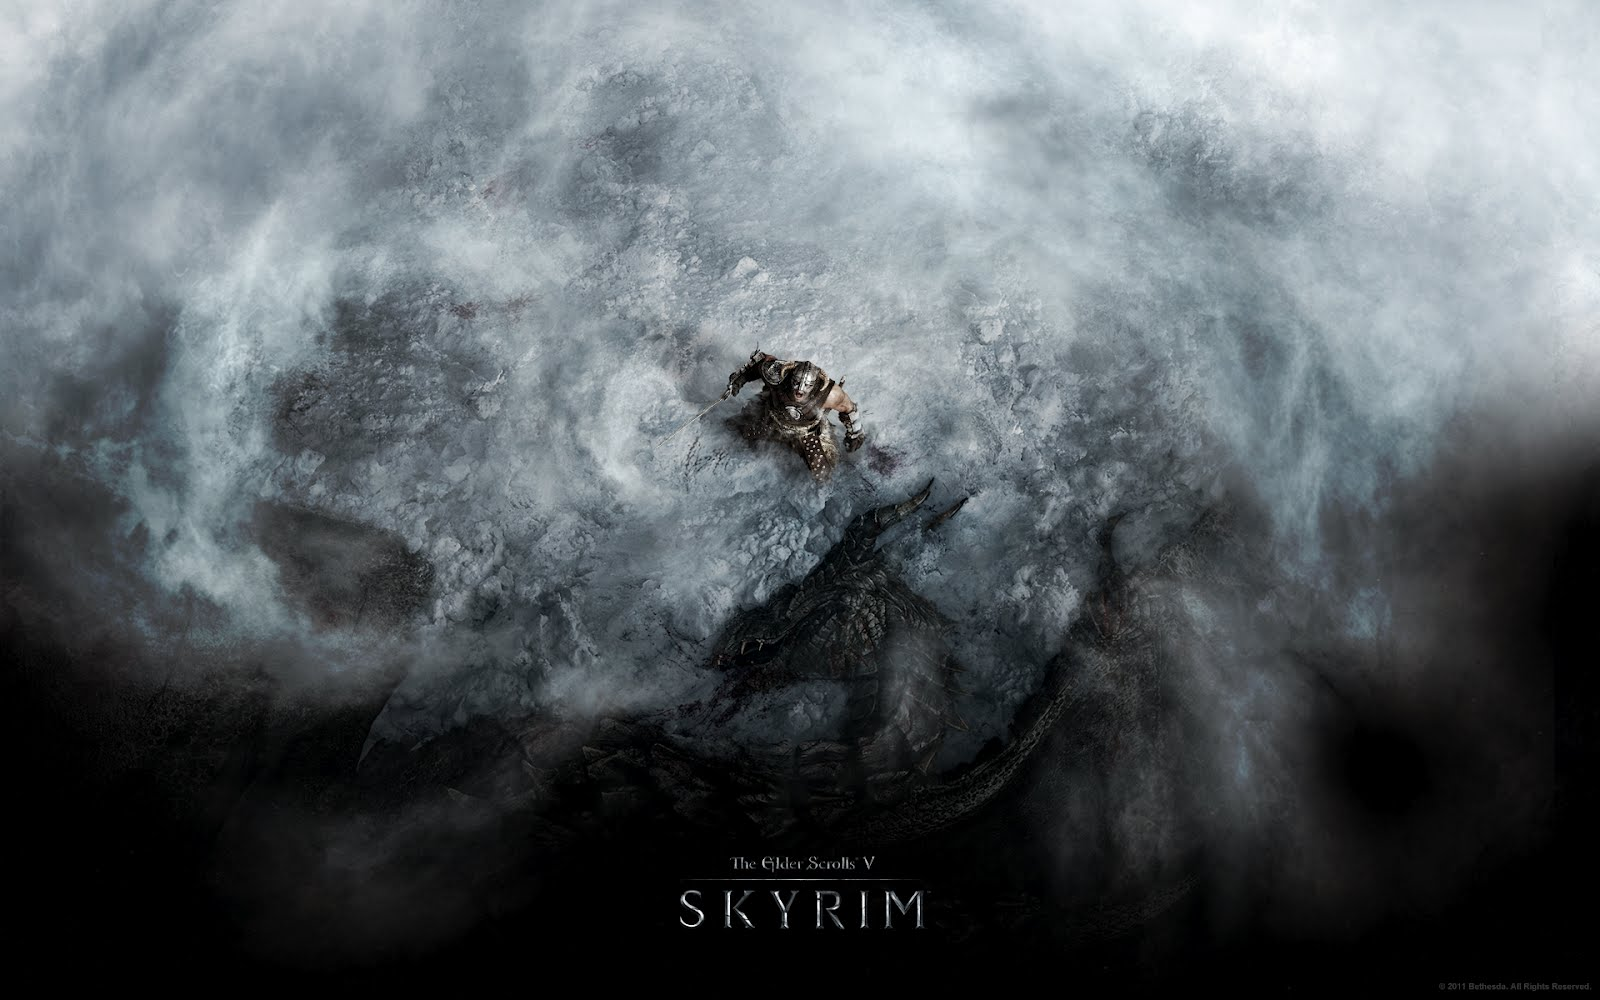 skyrim dragonborn wallpapers here are 5 official skyrim wallpapers to 1600x1000